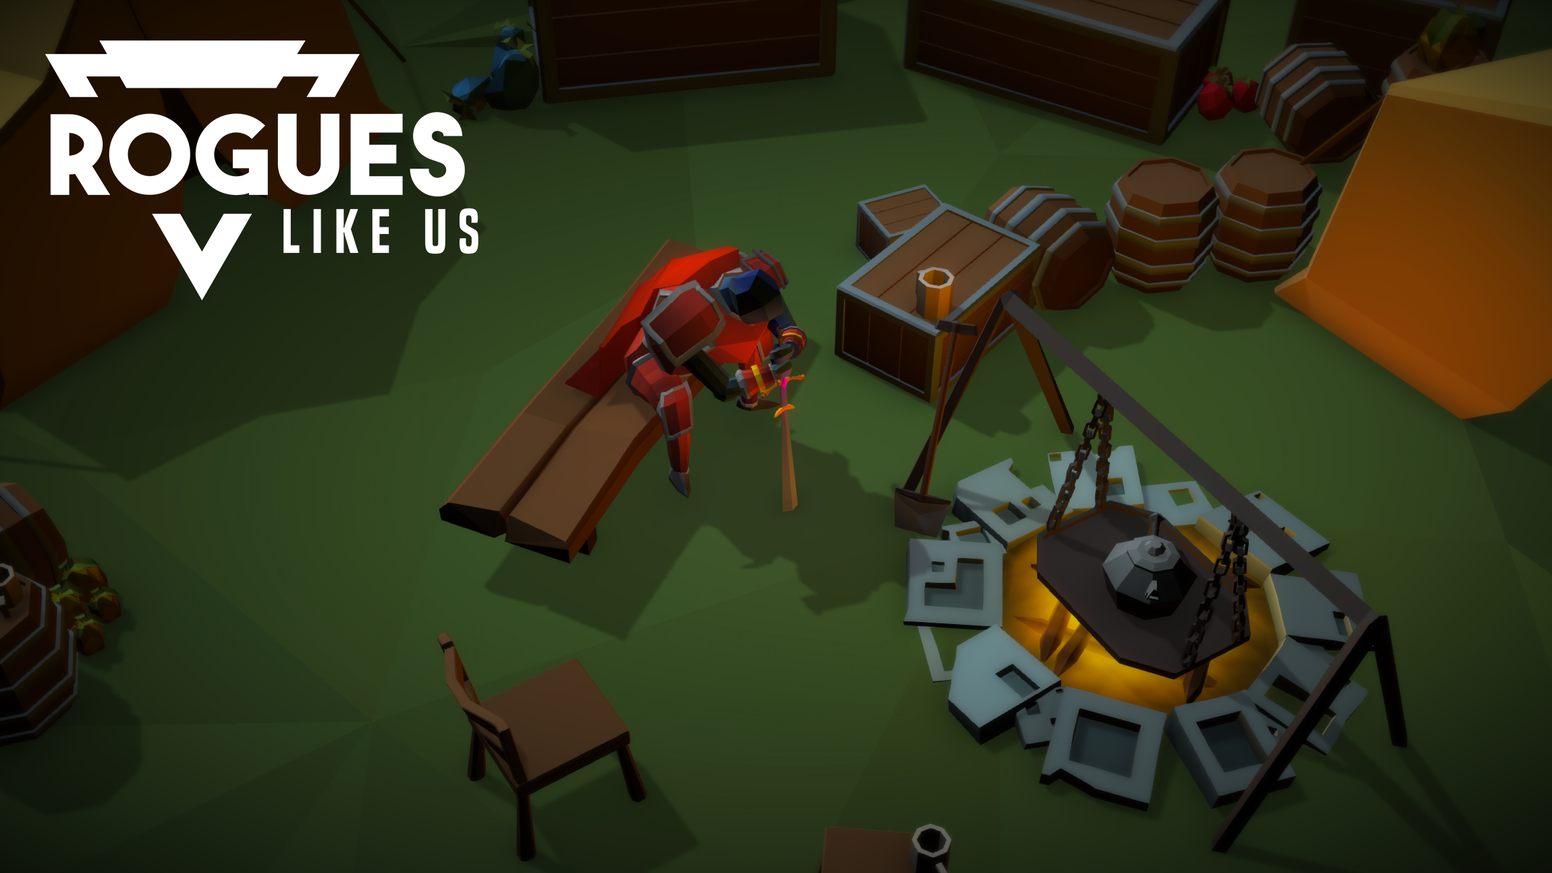 Become a Rogue and fight your way out of exile in this 3D hack n' slash rogue-like.